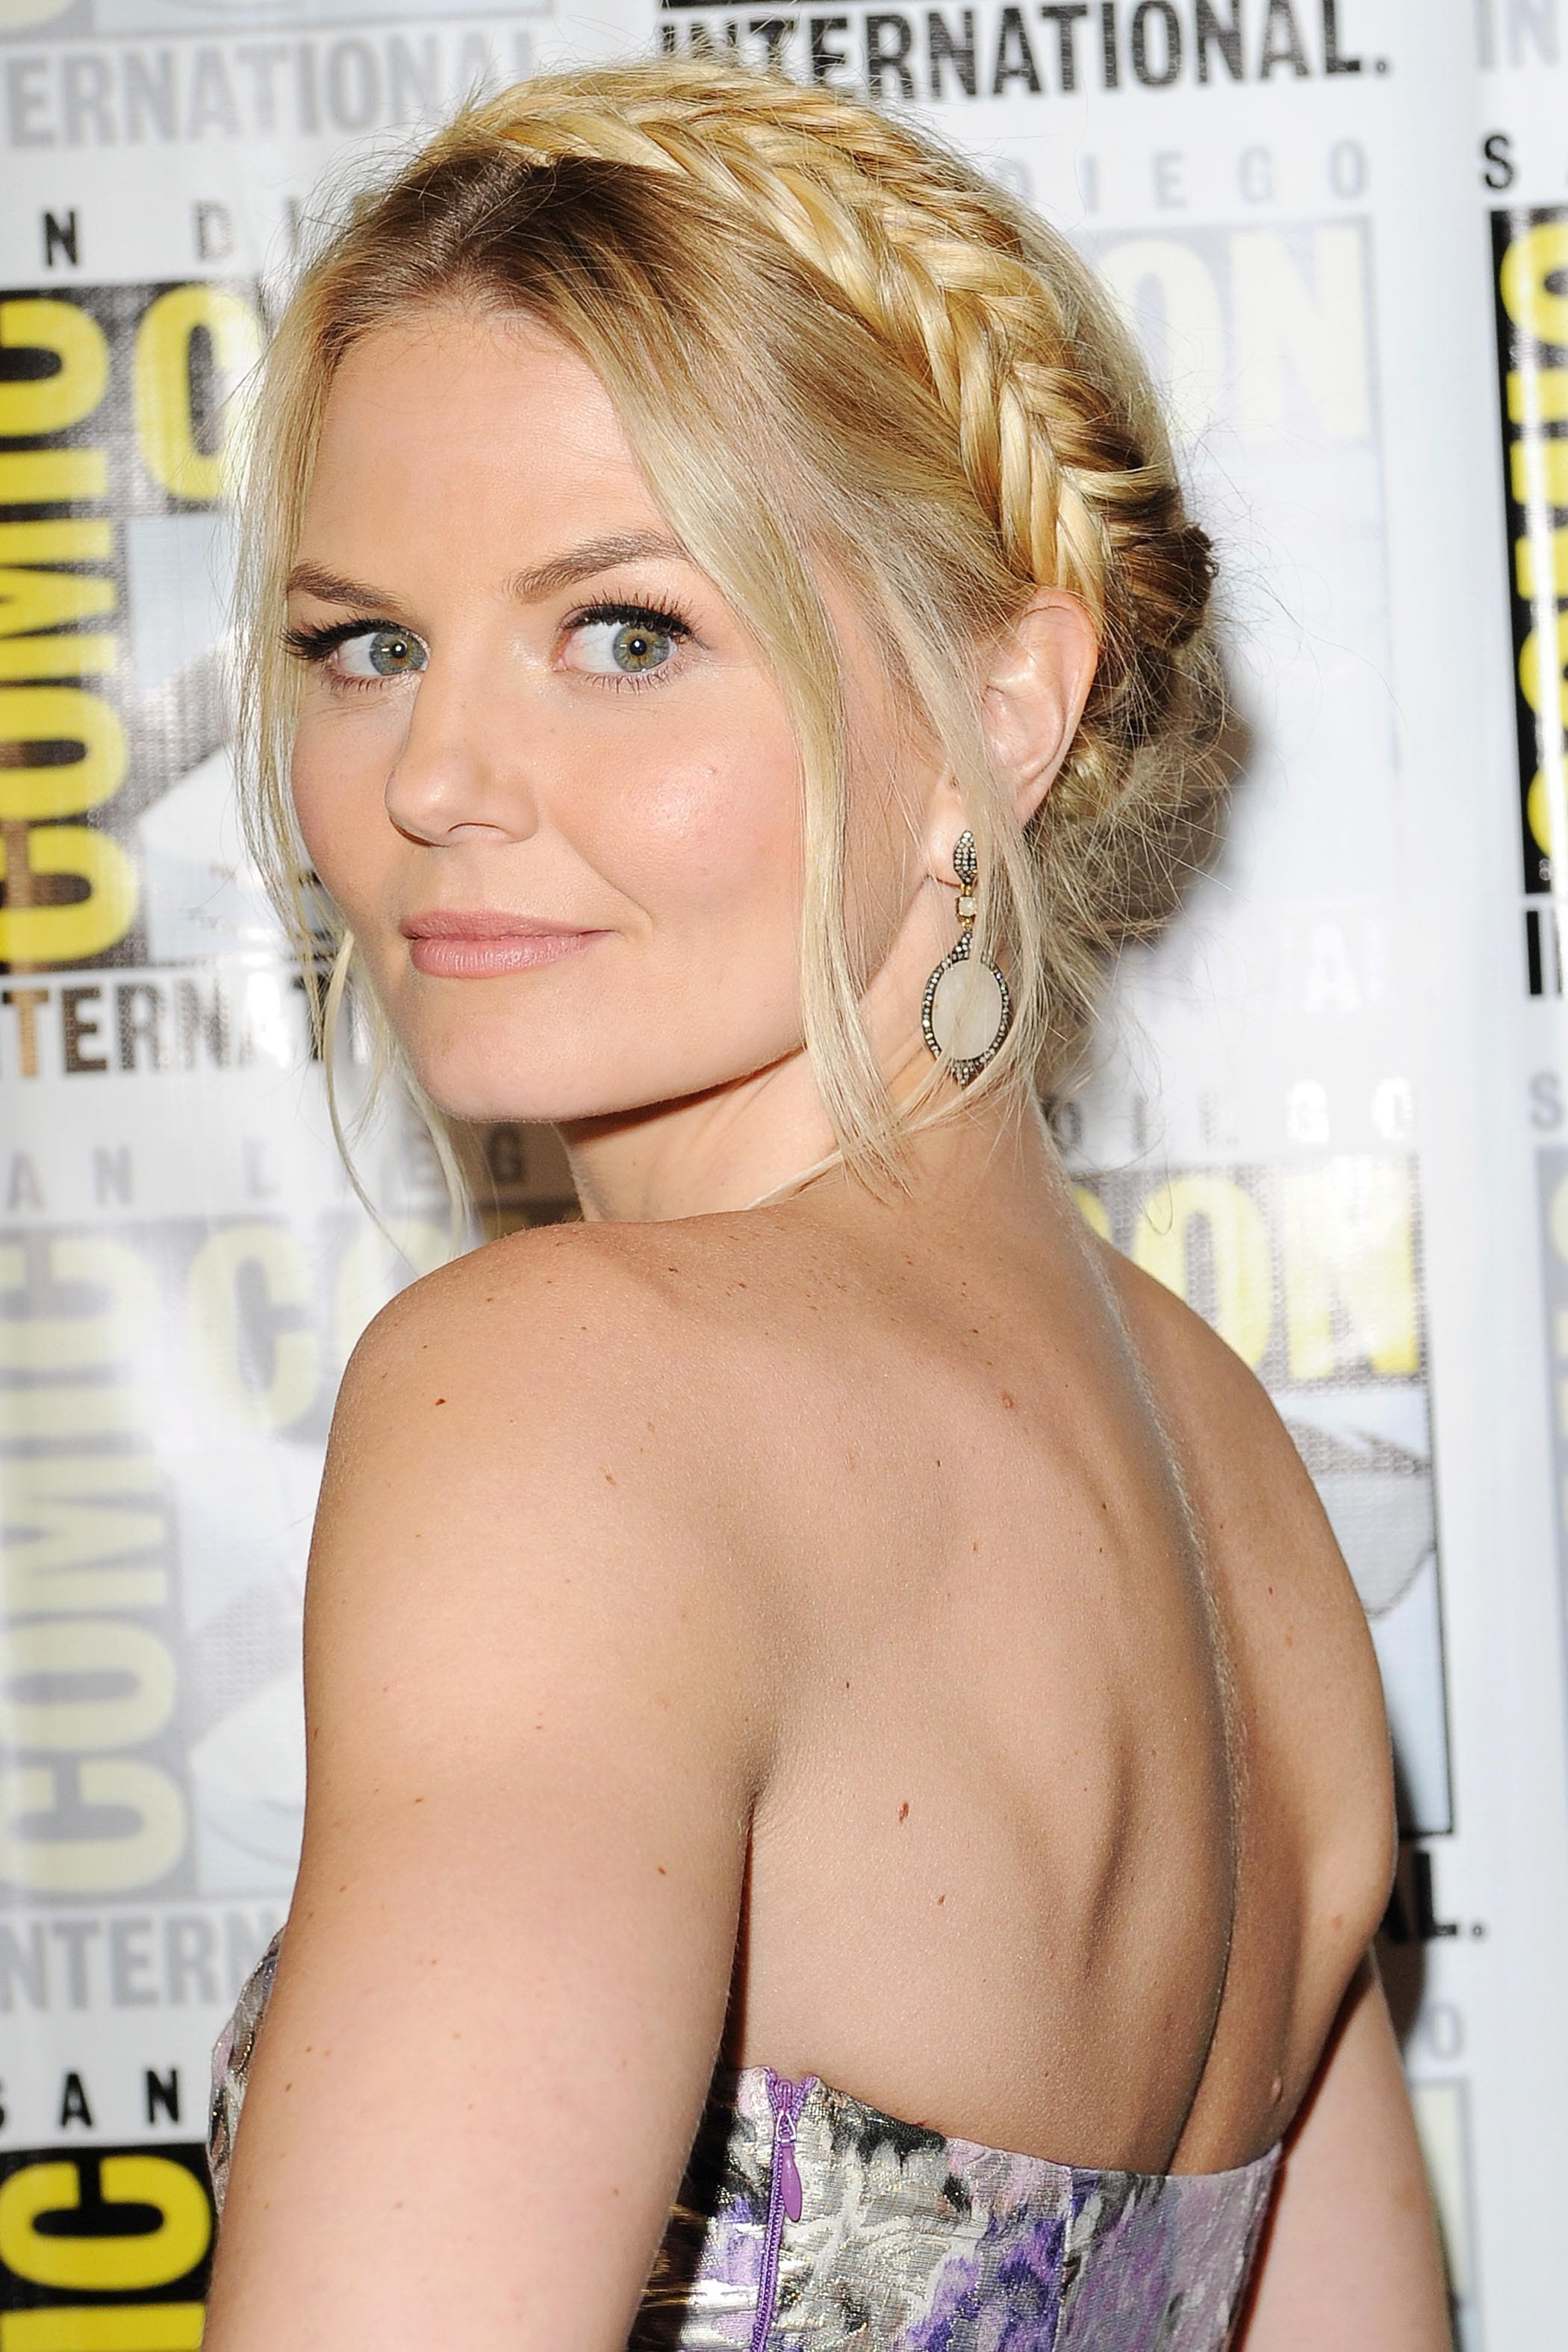 prom hairstyles for medium hair: jennifer morrison with blonde hair styled in milkmaid braids wearing a strapless dress